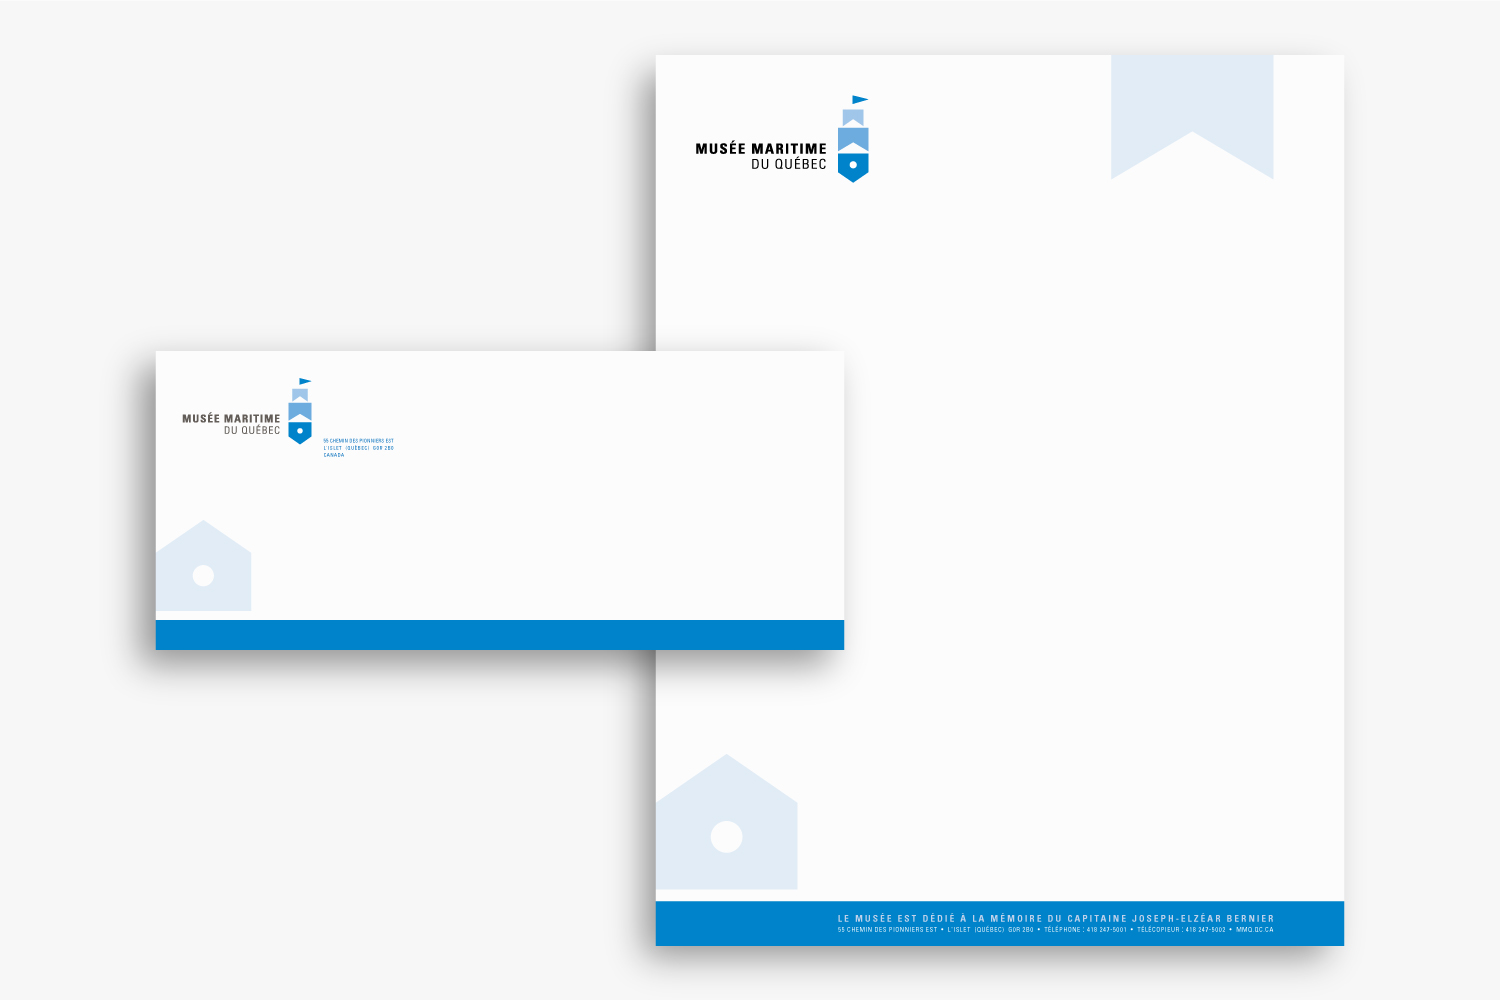 MMQ – Musée maritime du Québec – Identity & Stationery by Isabelle Robida – Infrarouge [Design & Culture] – 2007 – infrarouge.ca